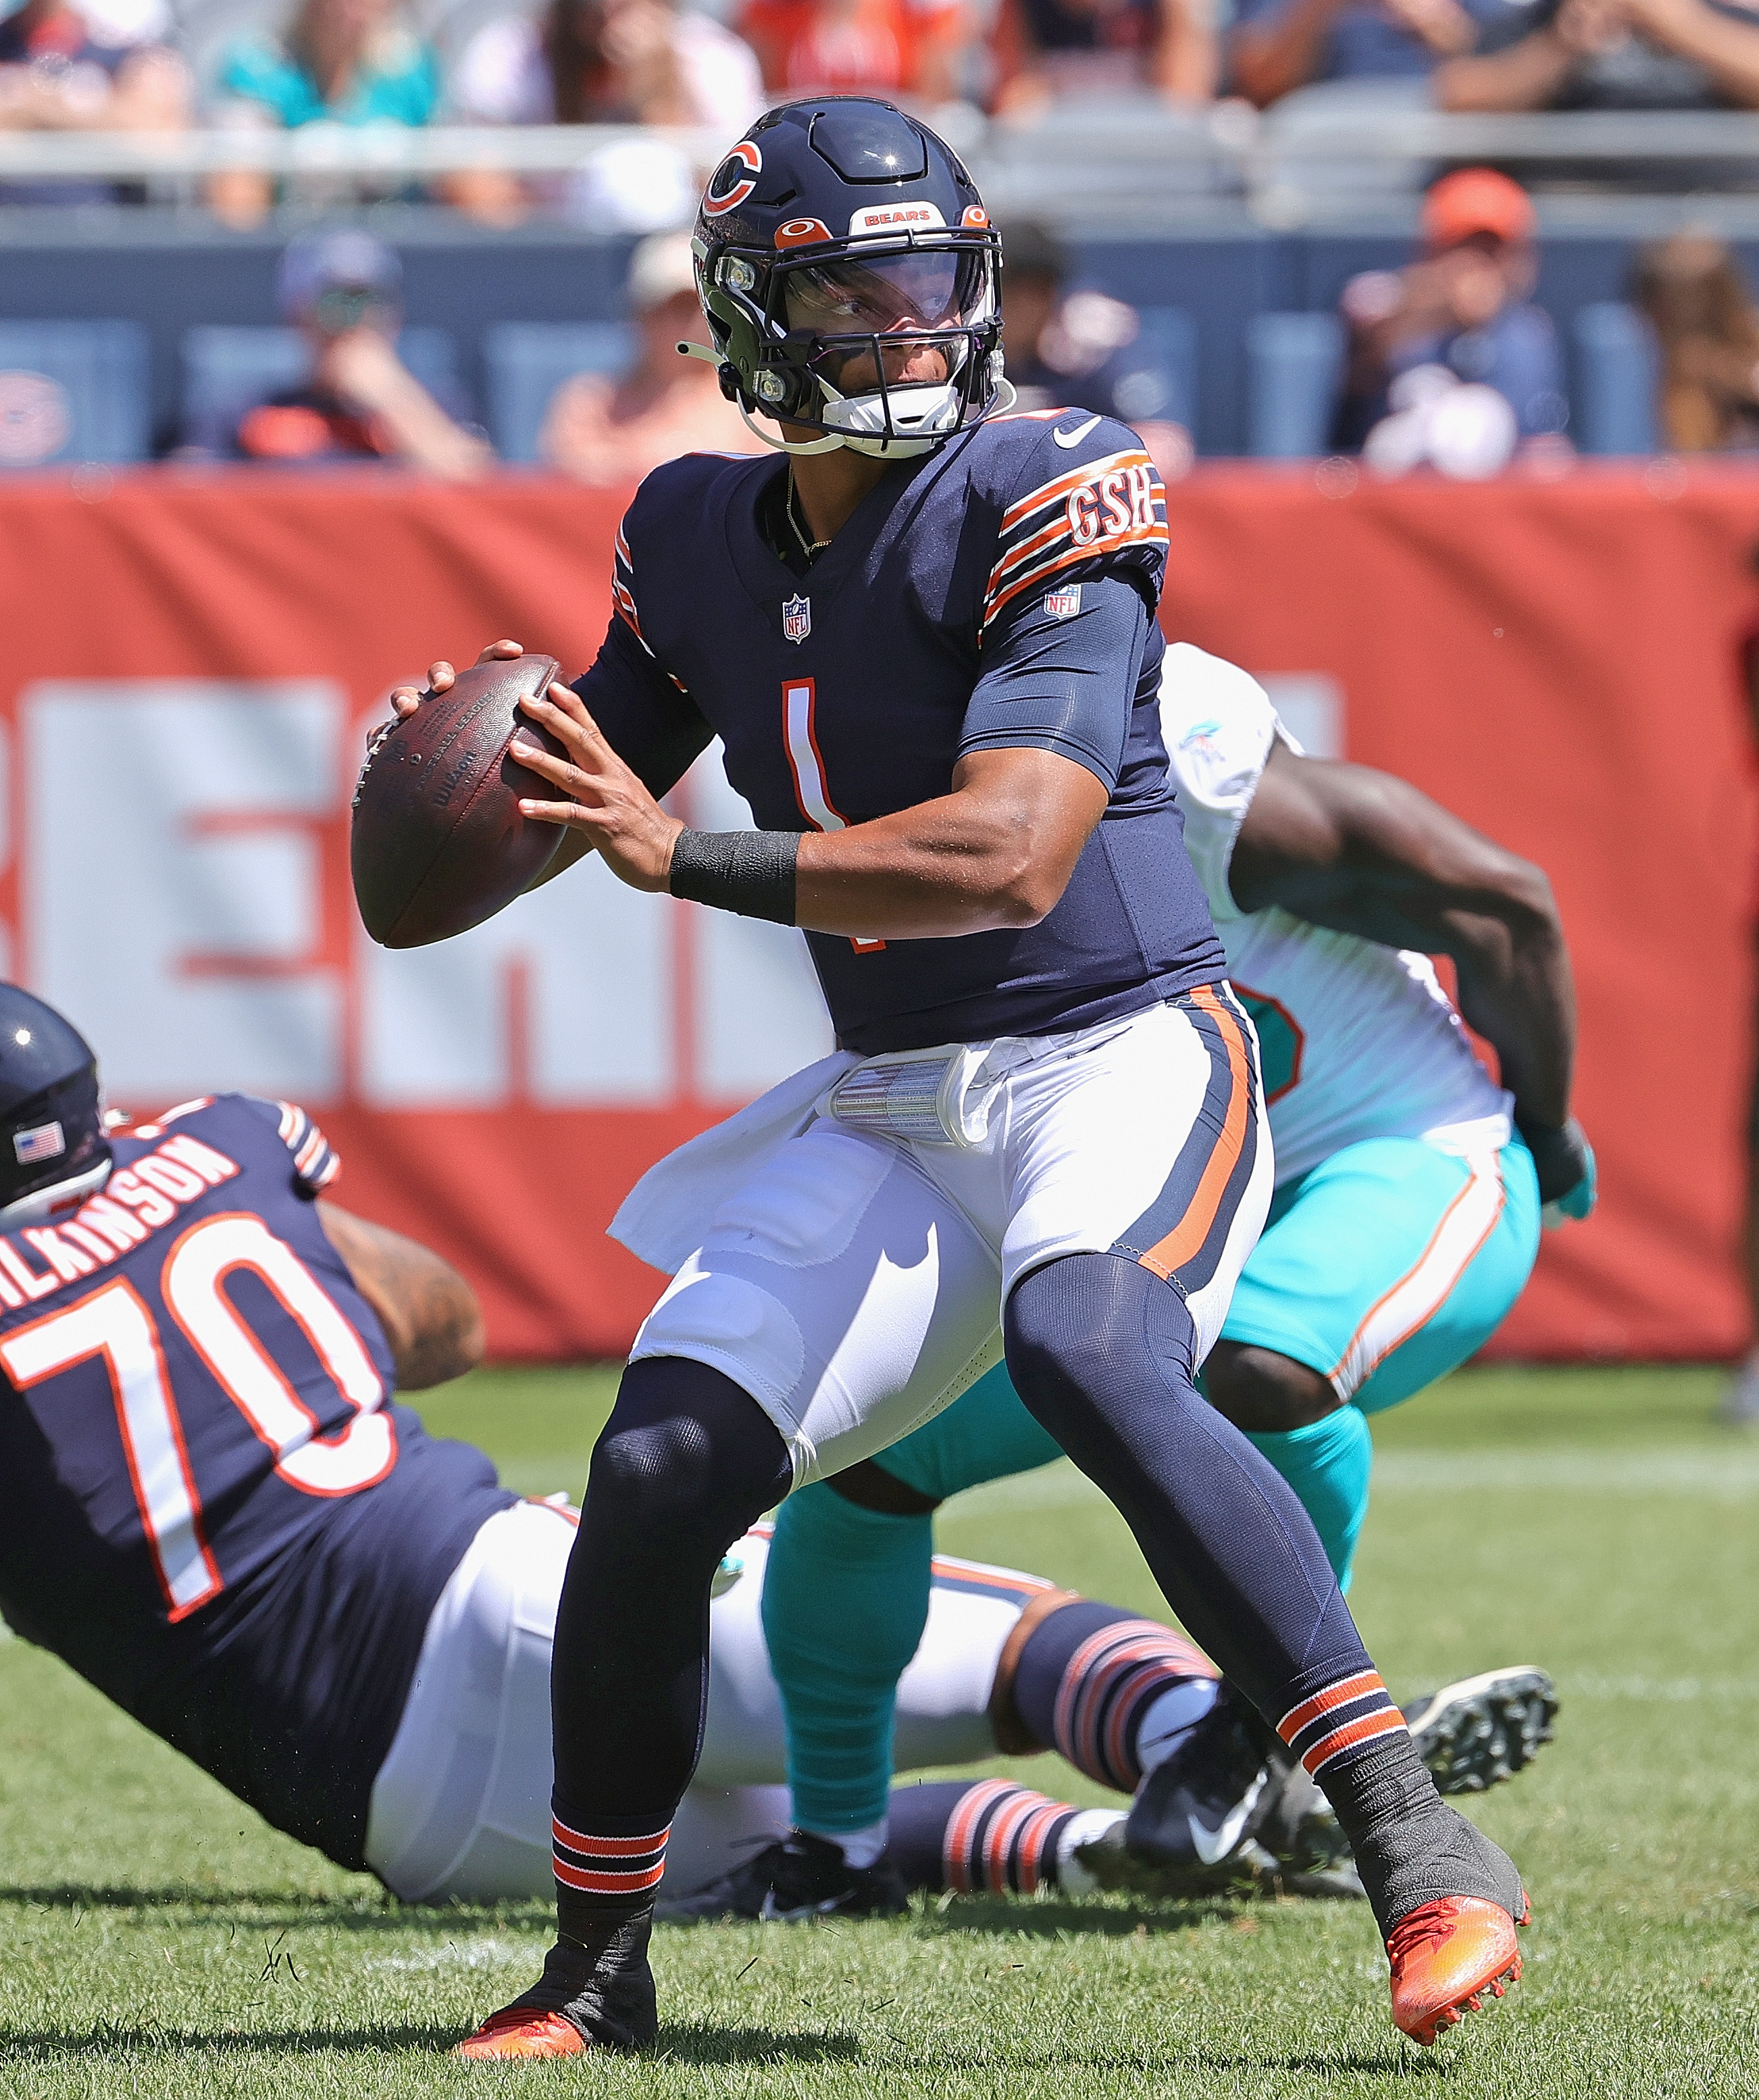 Justin Fields #1 of the Chicago Bears passes against the Miami Dolphins during a preseason game at Soldier Field on August 14, 2021 in Chicago, Illinois.